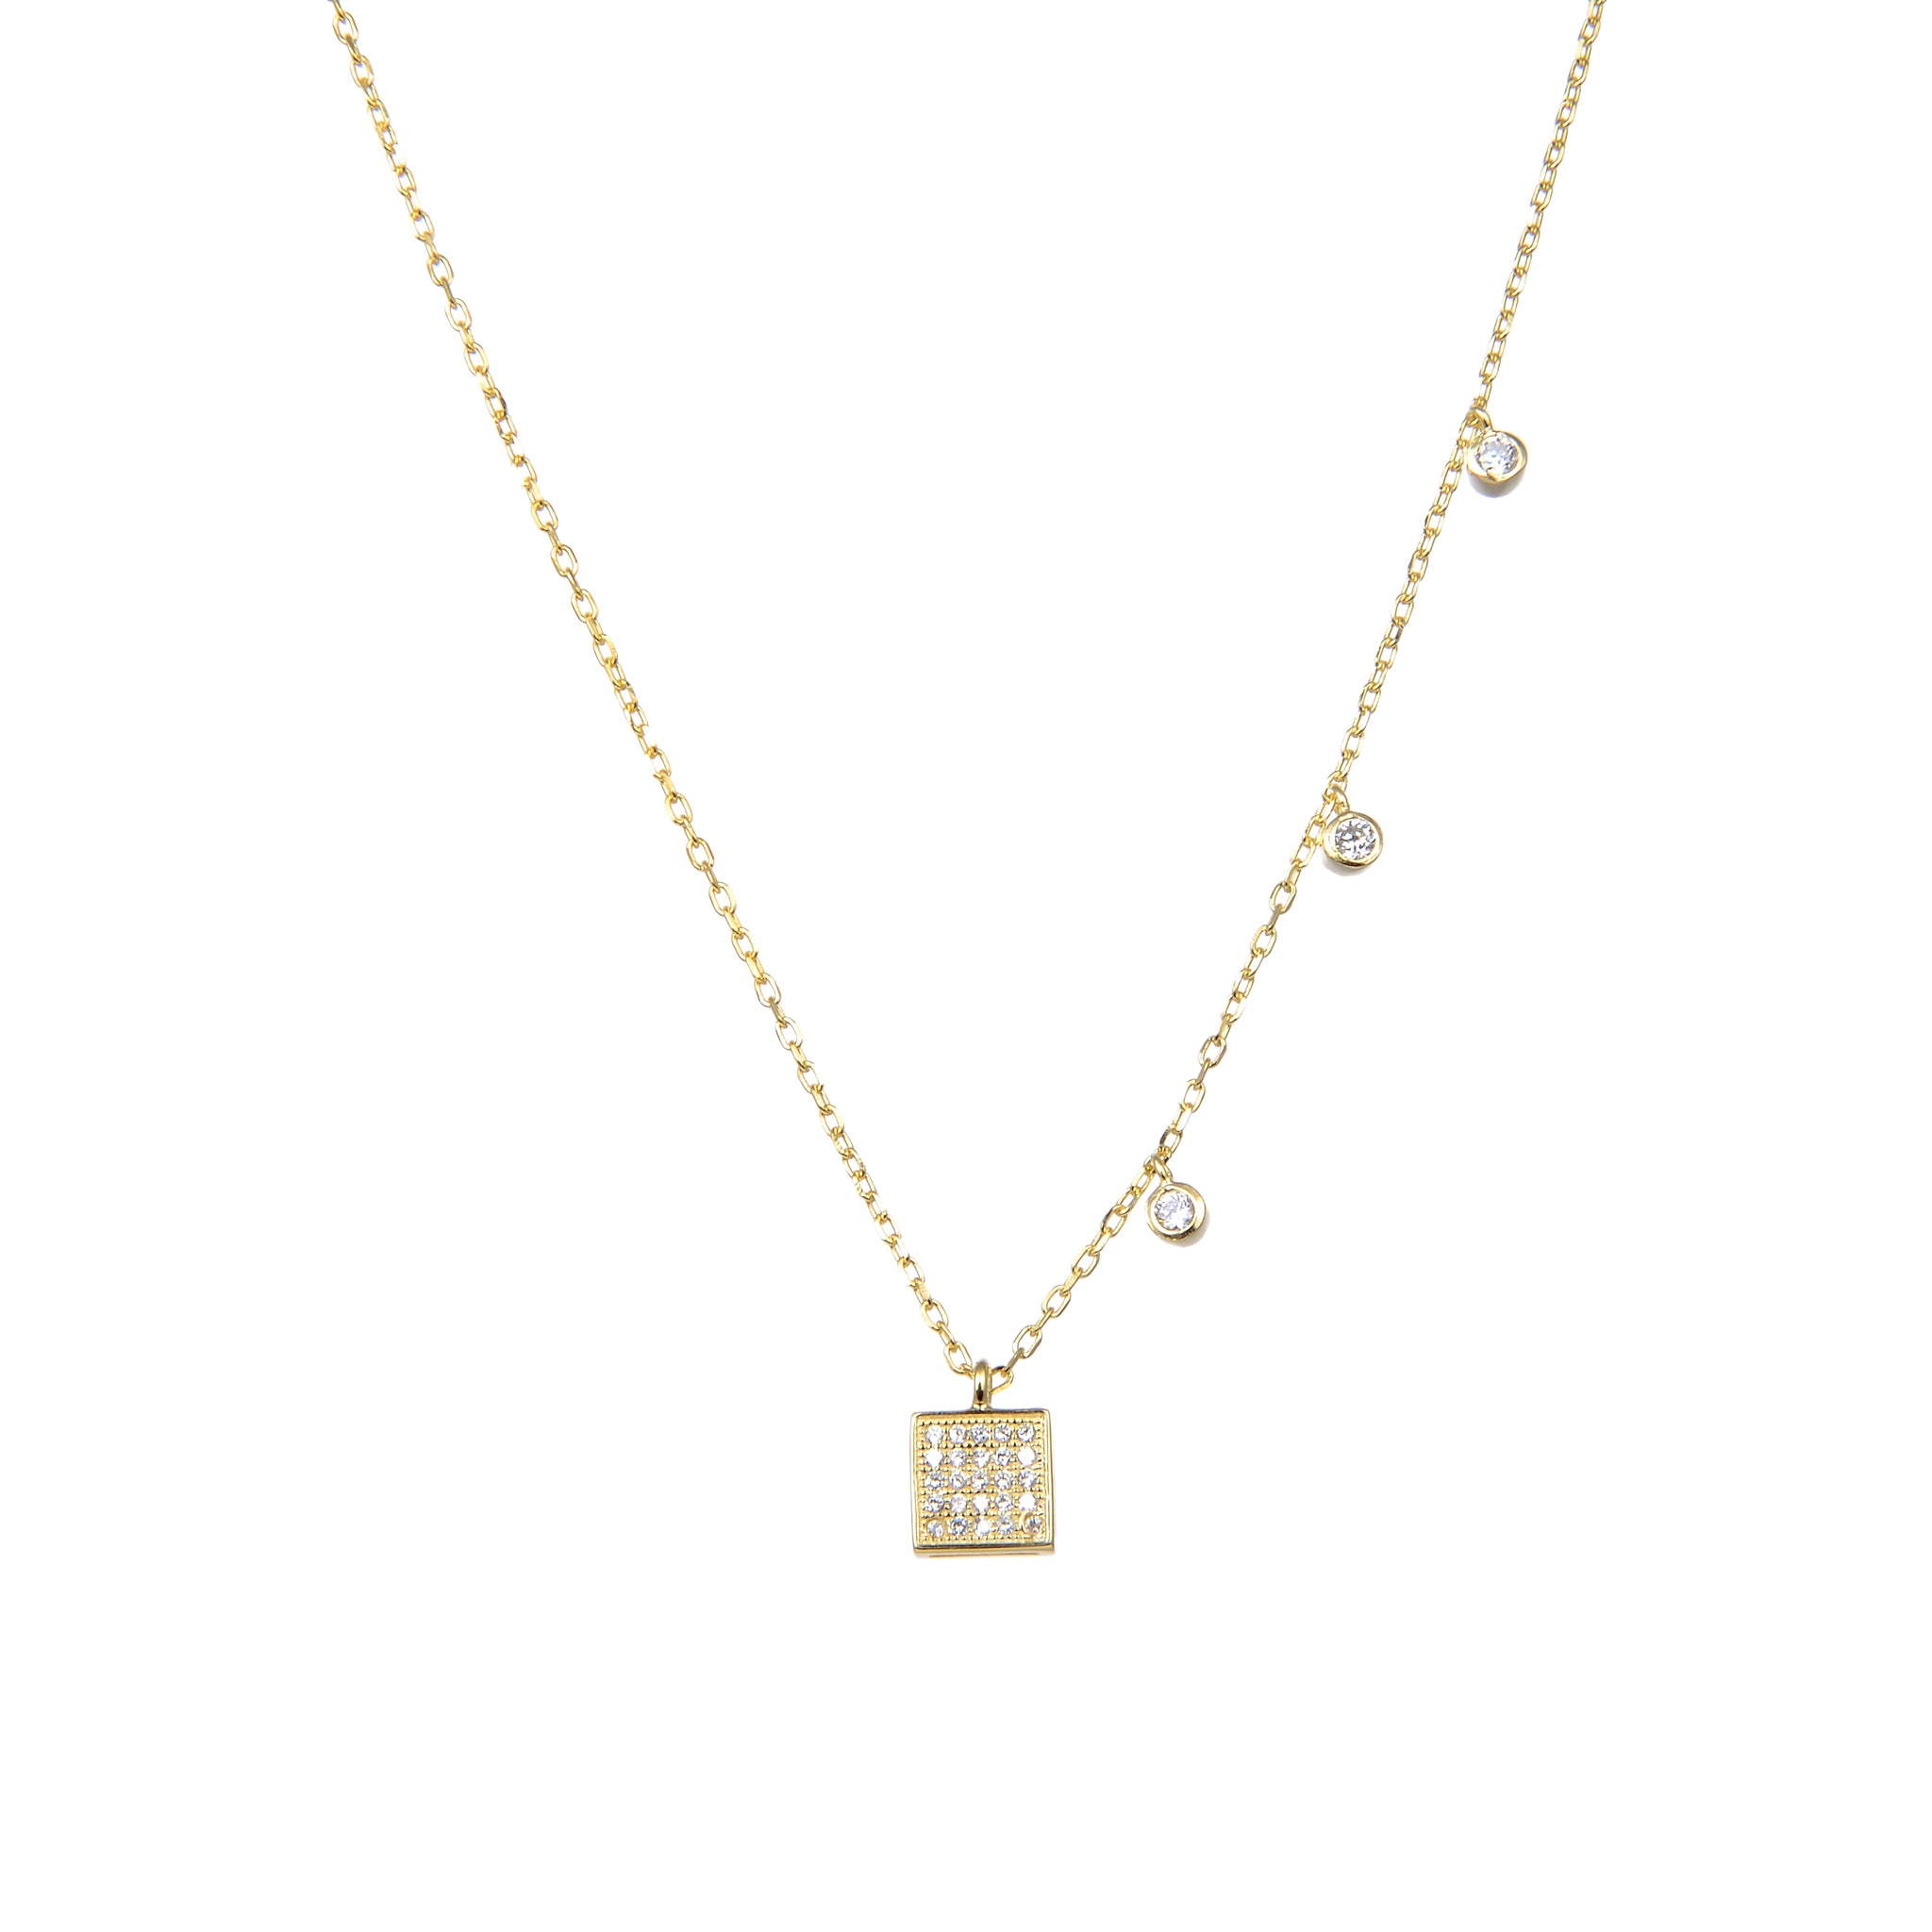 92.5 Sterling Silver CZ Cubic Zirconia Square Shape Pendant with Sterling Silver Necklace Chain